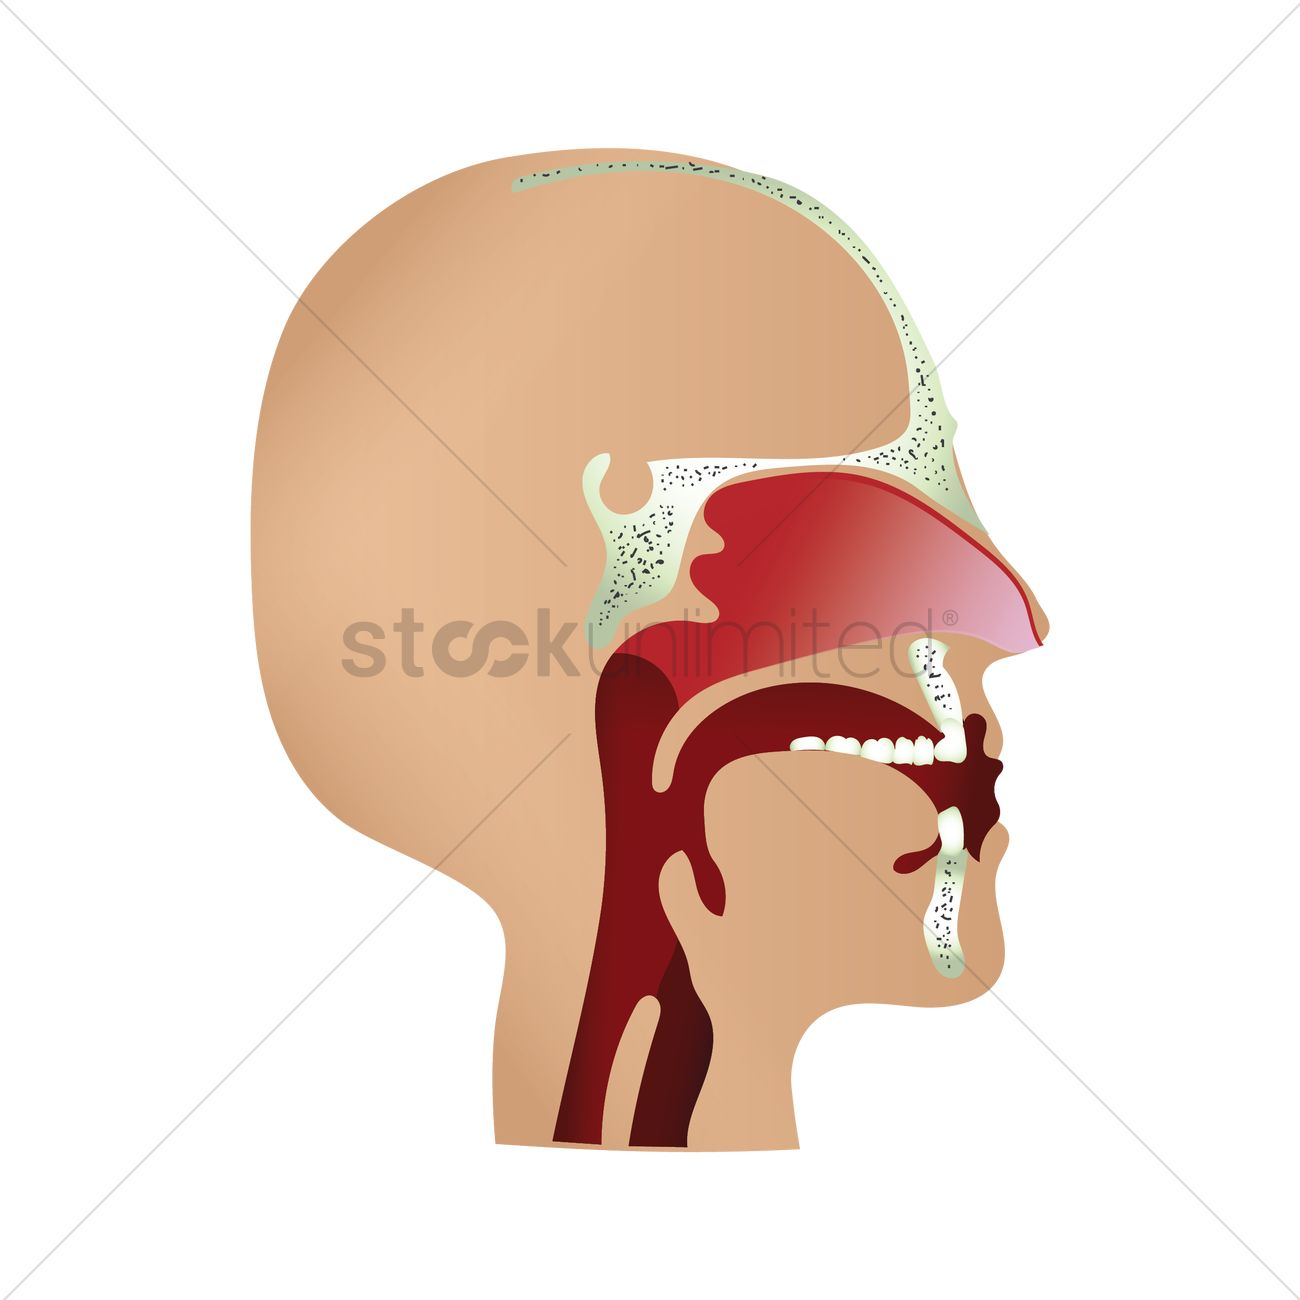 Human throat anatomy Vector Image - 1759223 | StockUnlimited